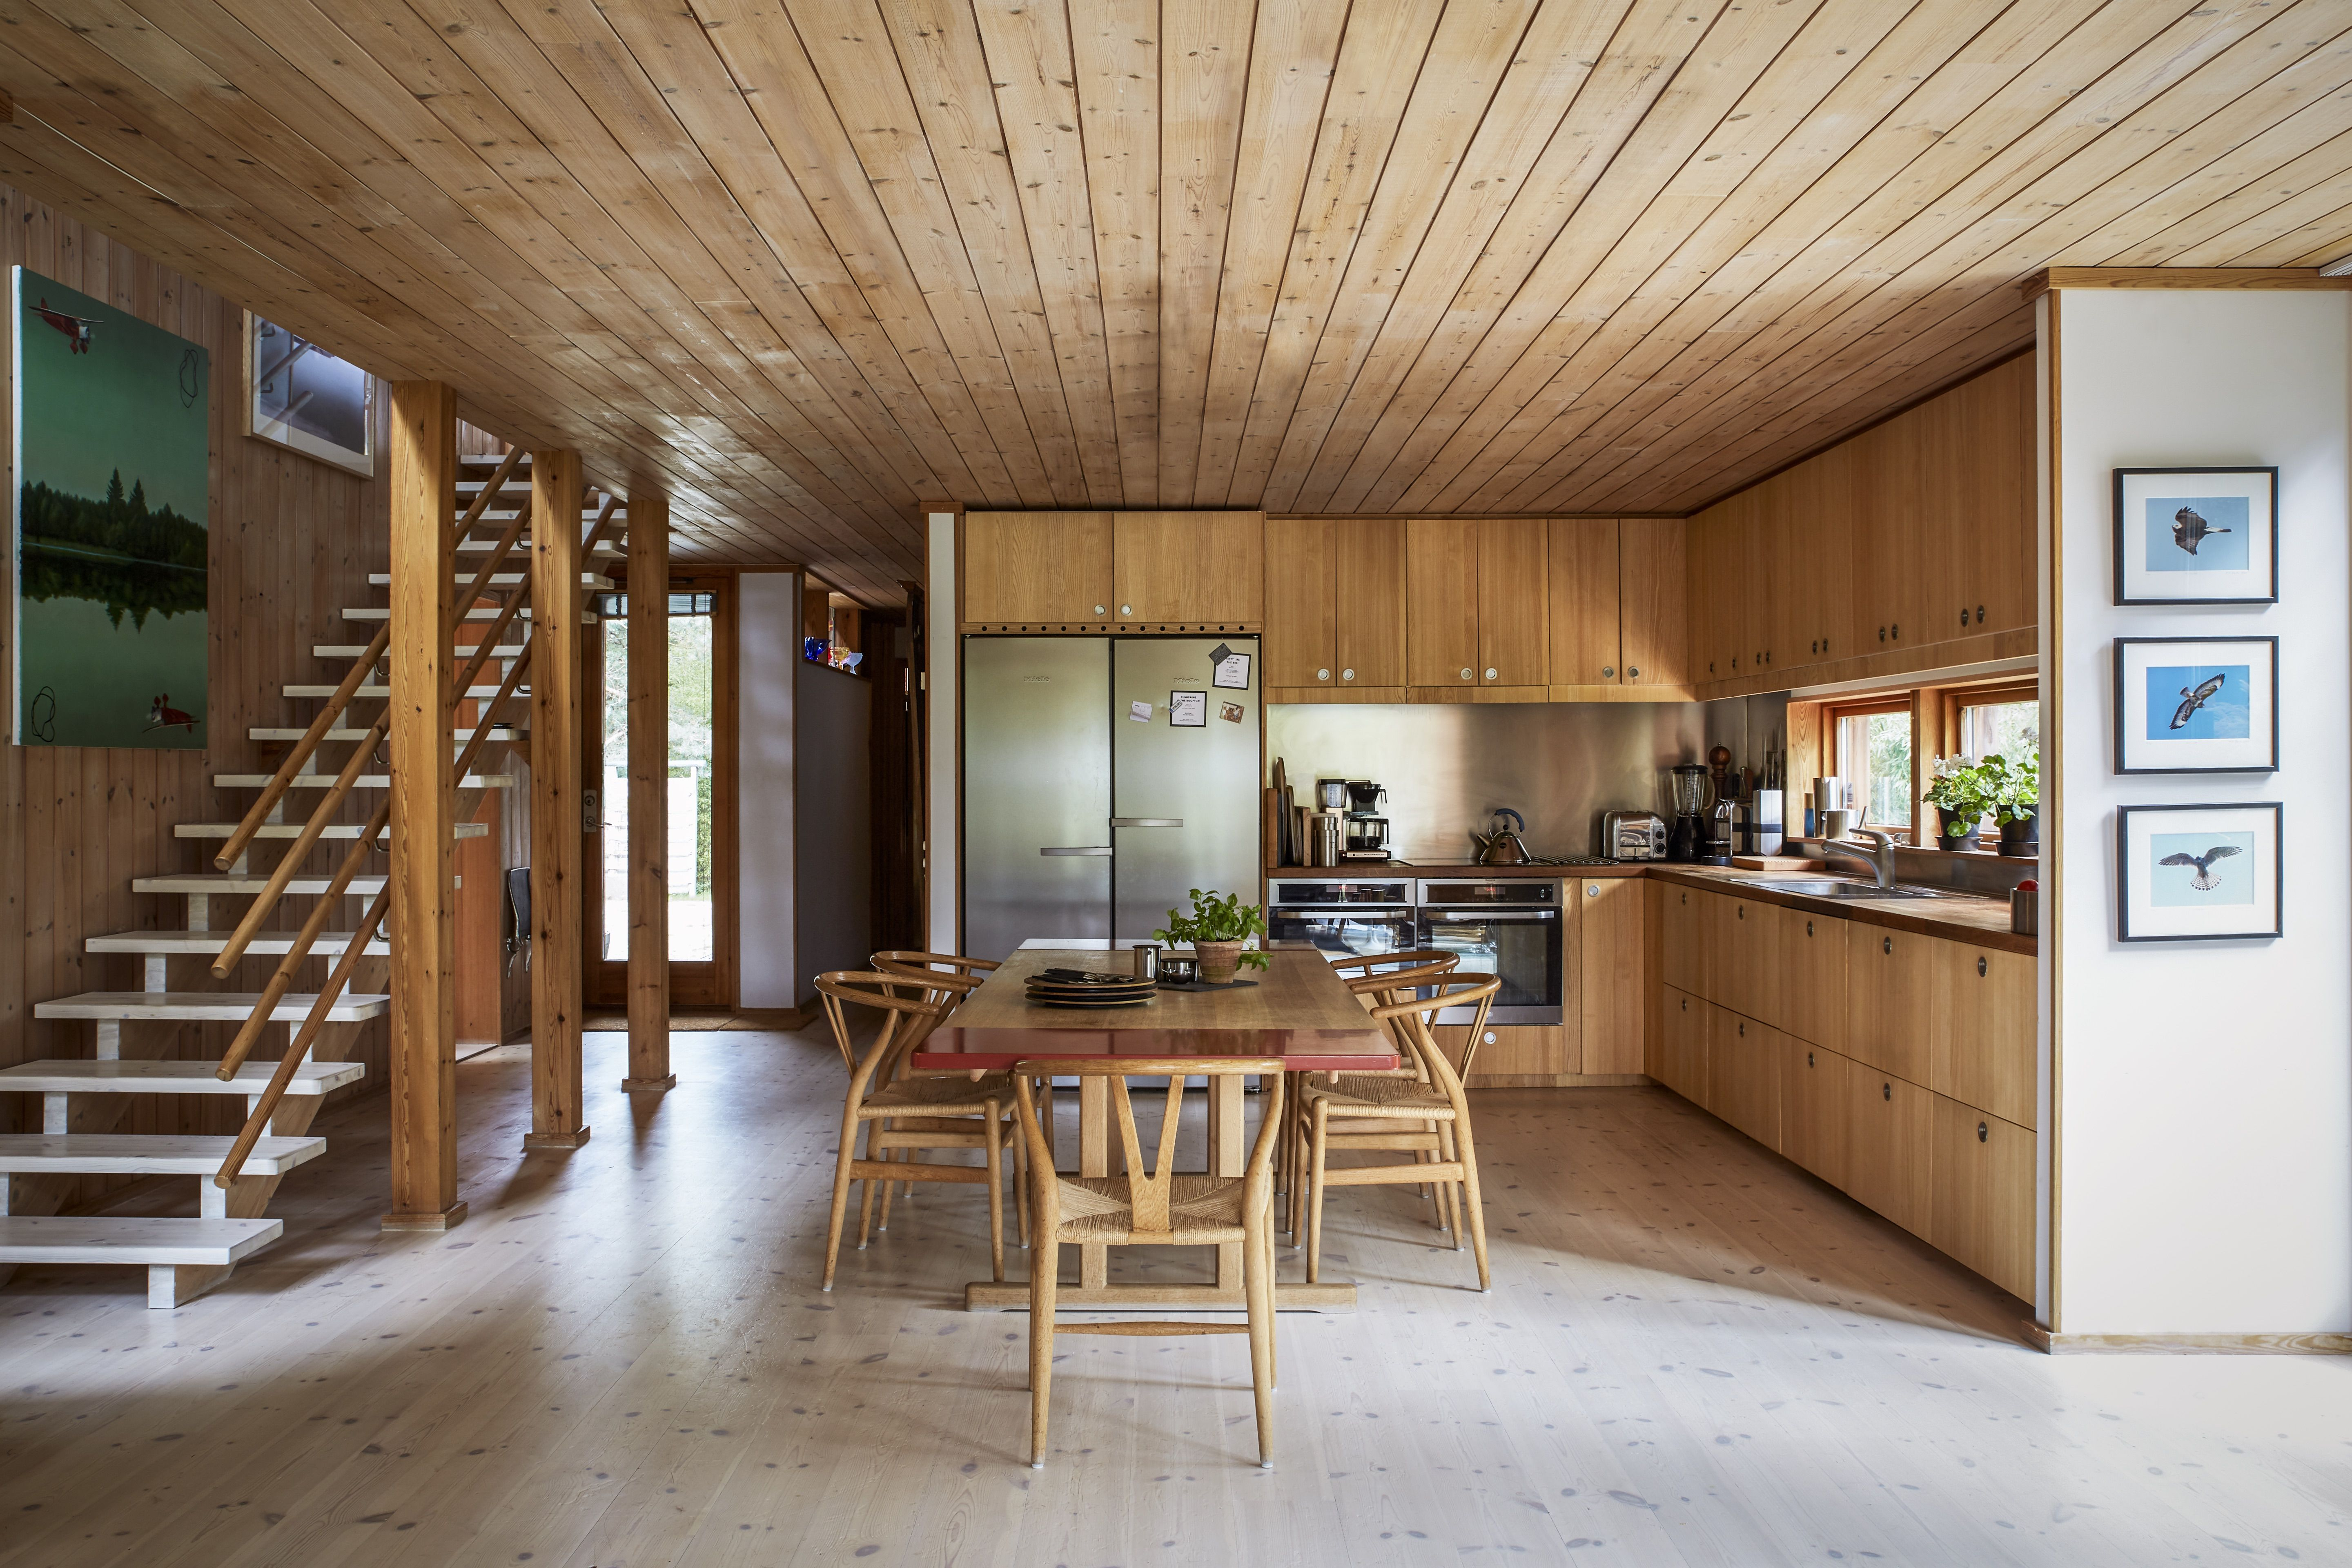 The home of String's co-founder Peter Erlandsson is simple, stylish and intrinsically Scandinavian